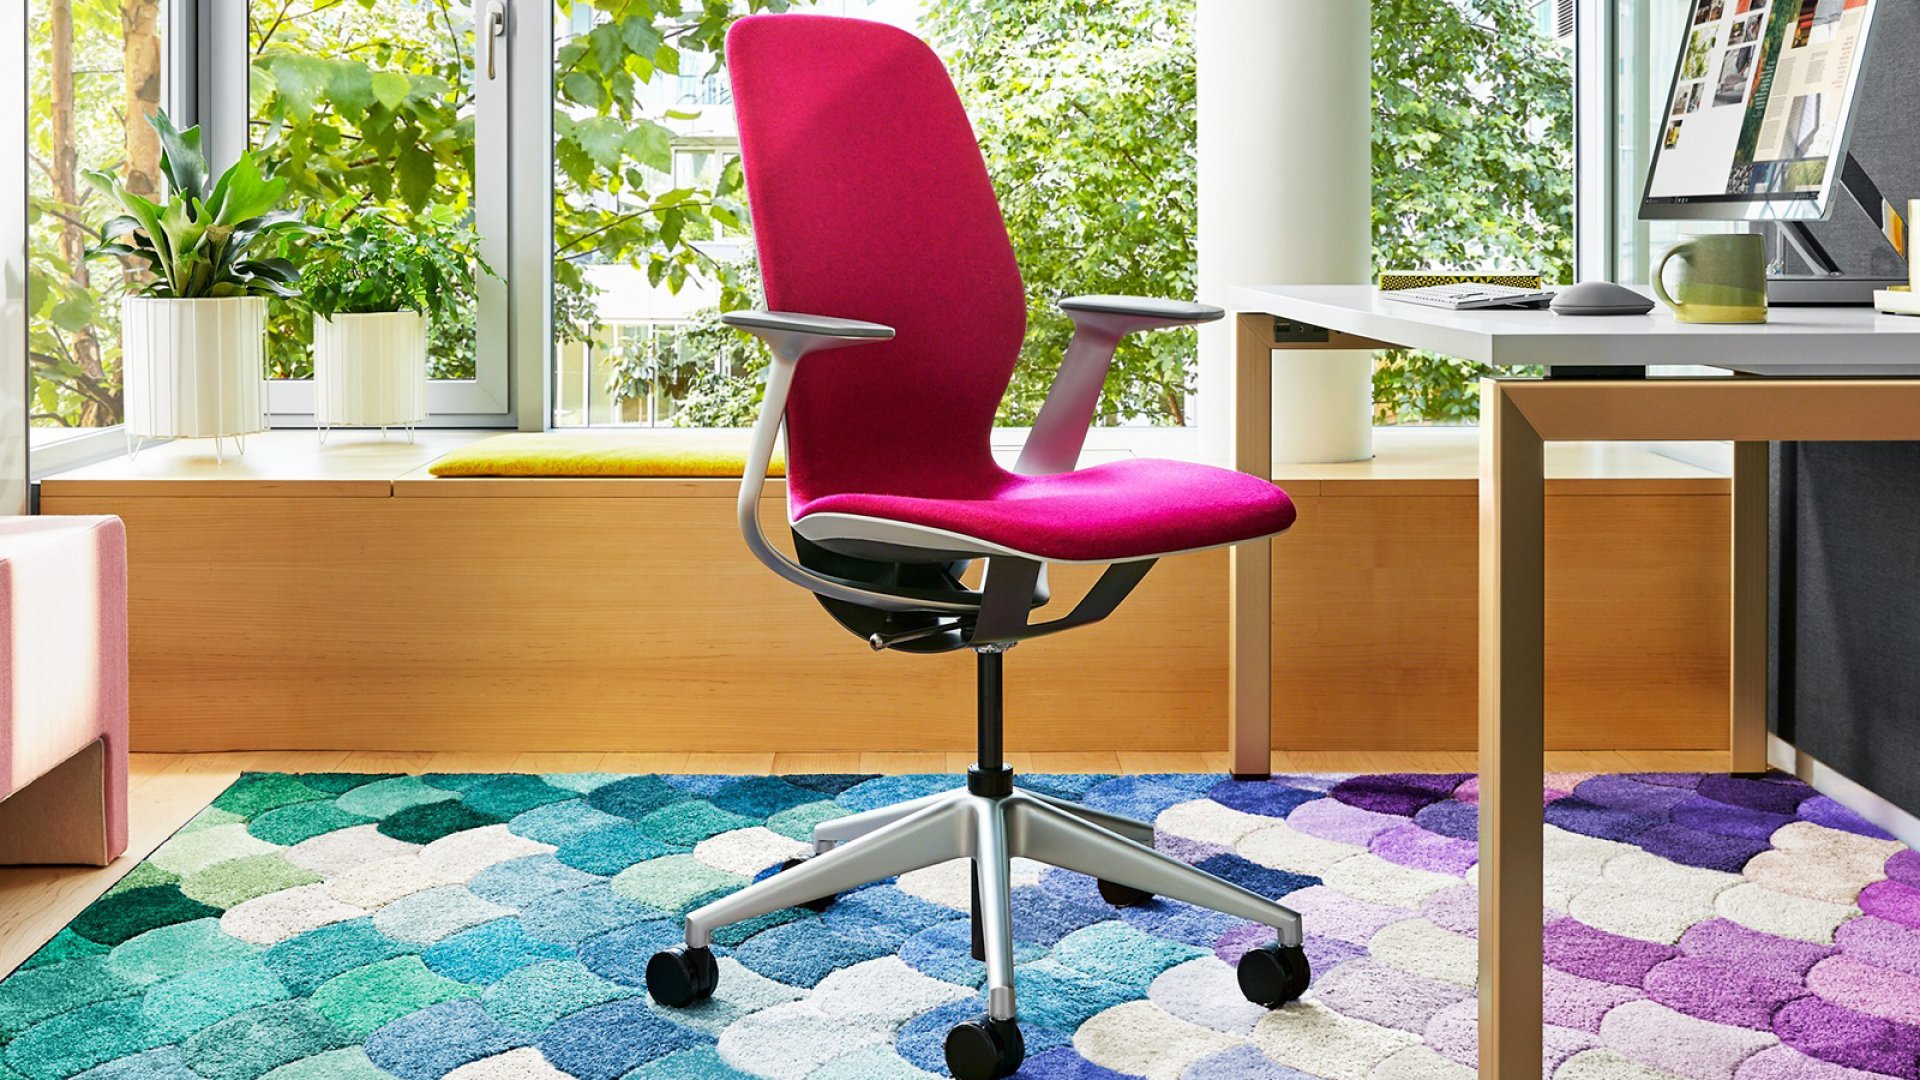 This Steelcase chair will make you super productive at your desk and using an iPad.